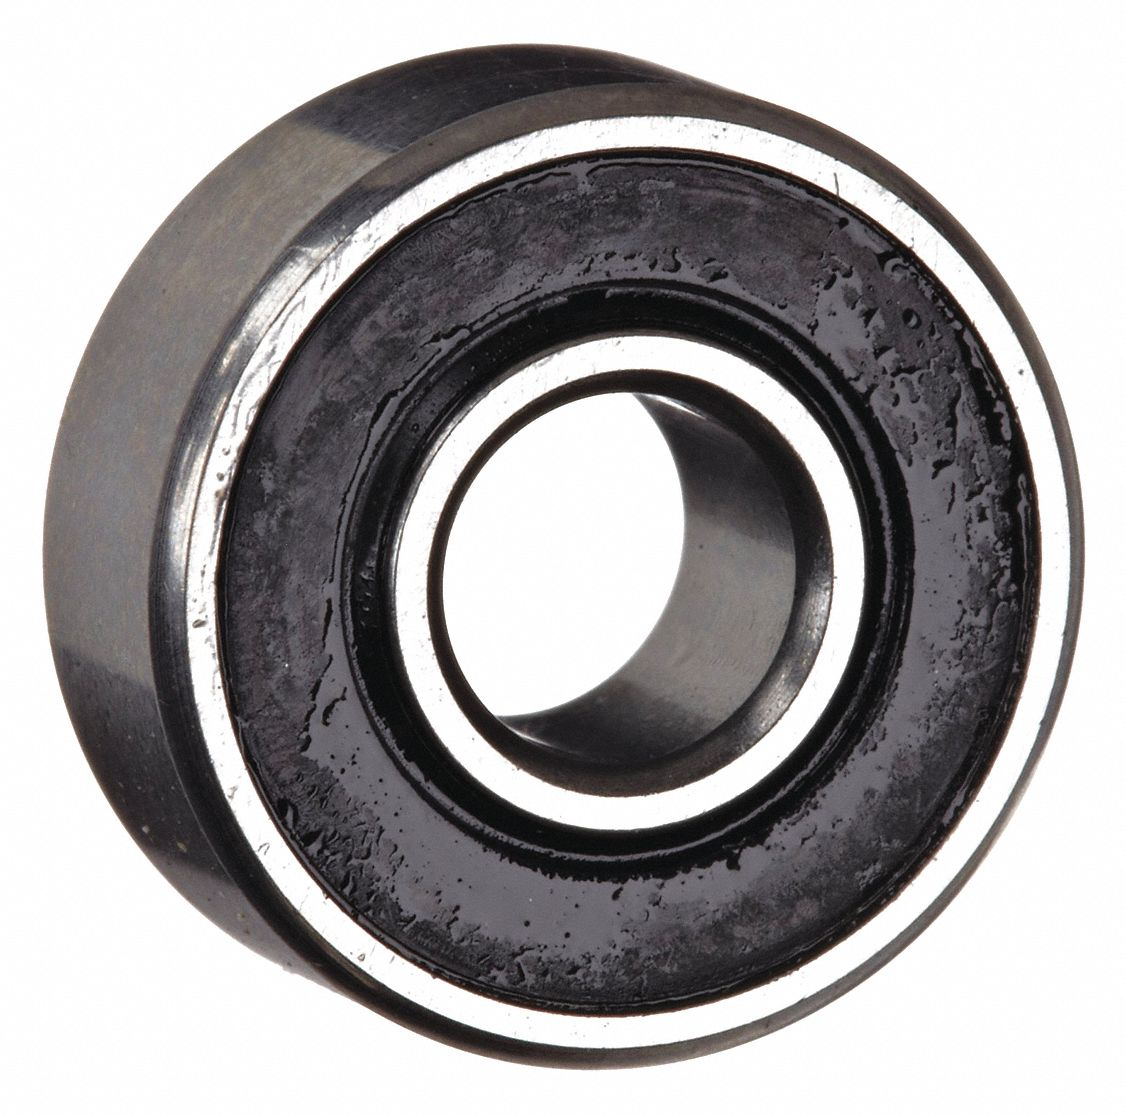 Radial Ball Bearing, Double Shielded, 0.1875 in Bore Dia., 0.5 in Outside Dia.